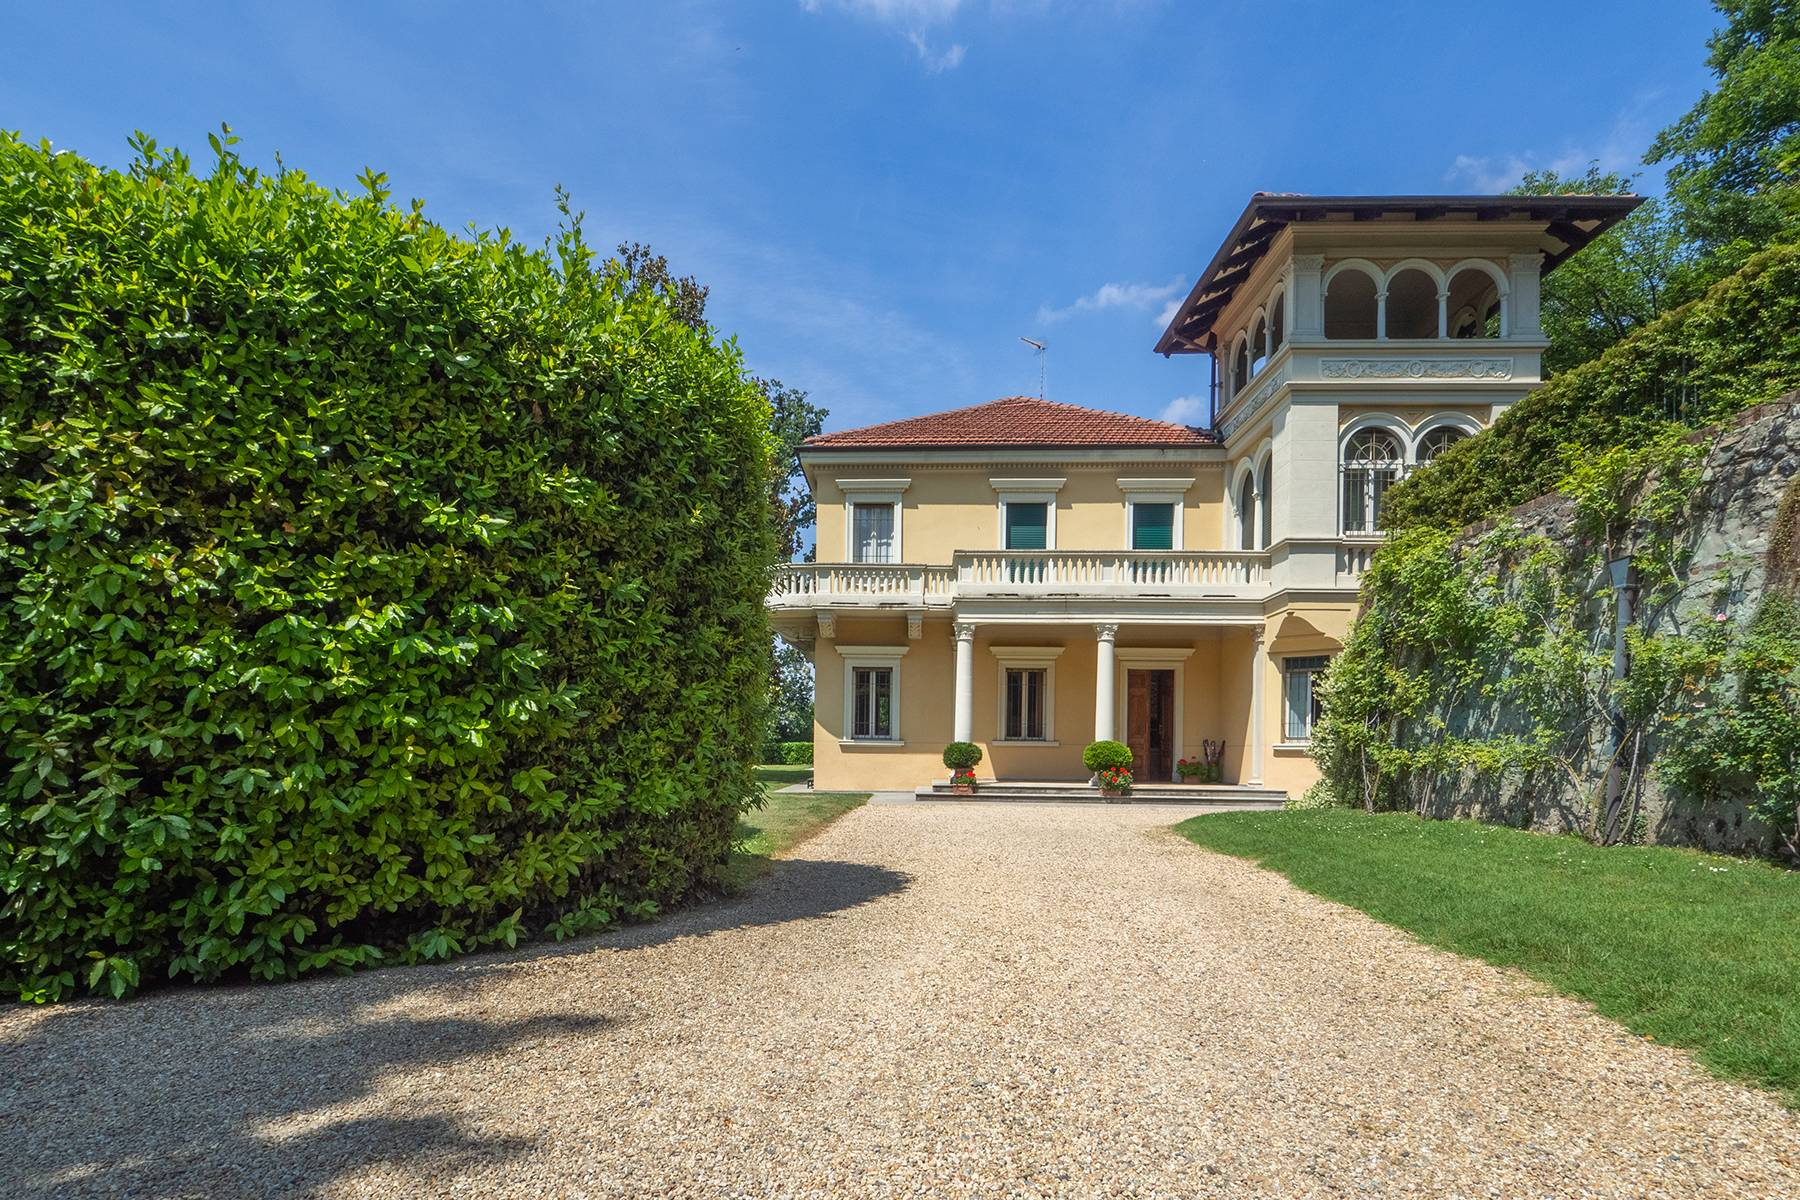 Single Family Homes for Sale at Exquisite villa with swimming pool in the hill of Turin Torino, Turin Italy